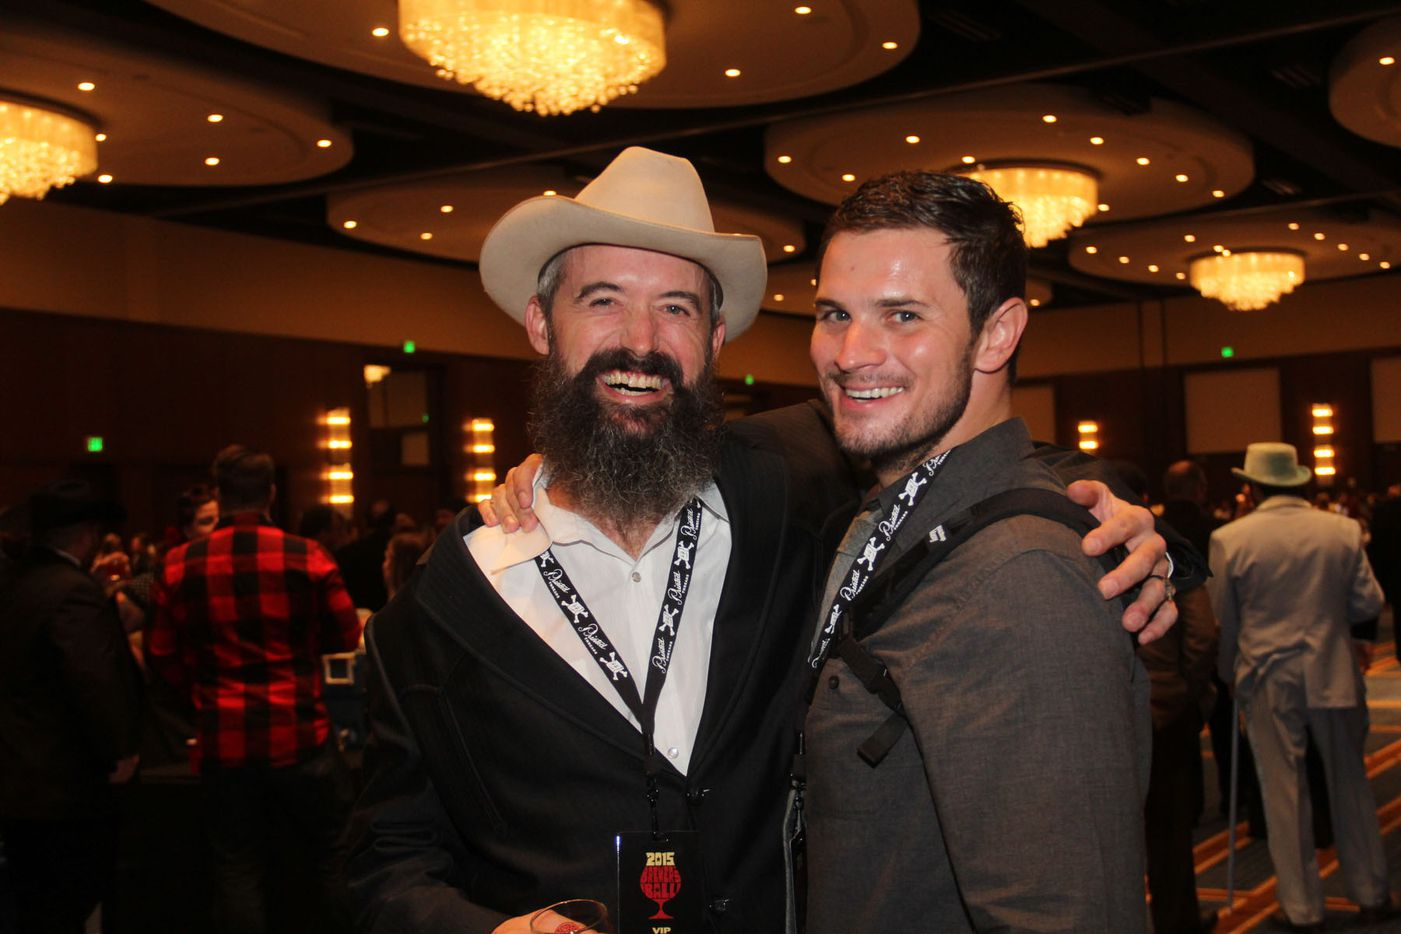 NTX Beer Week held its Second Annual Brewers Ball at the Renaissance Dallas Hotel on November 13, 2015. Tony Drewry and Tyler Malone